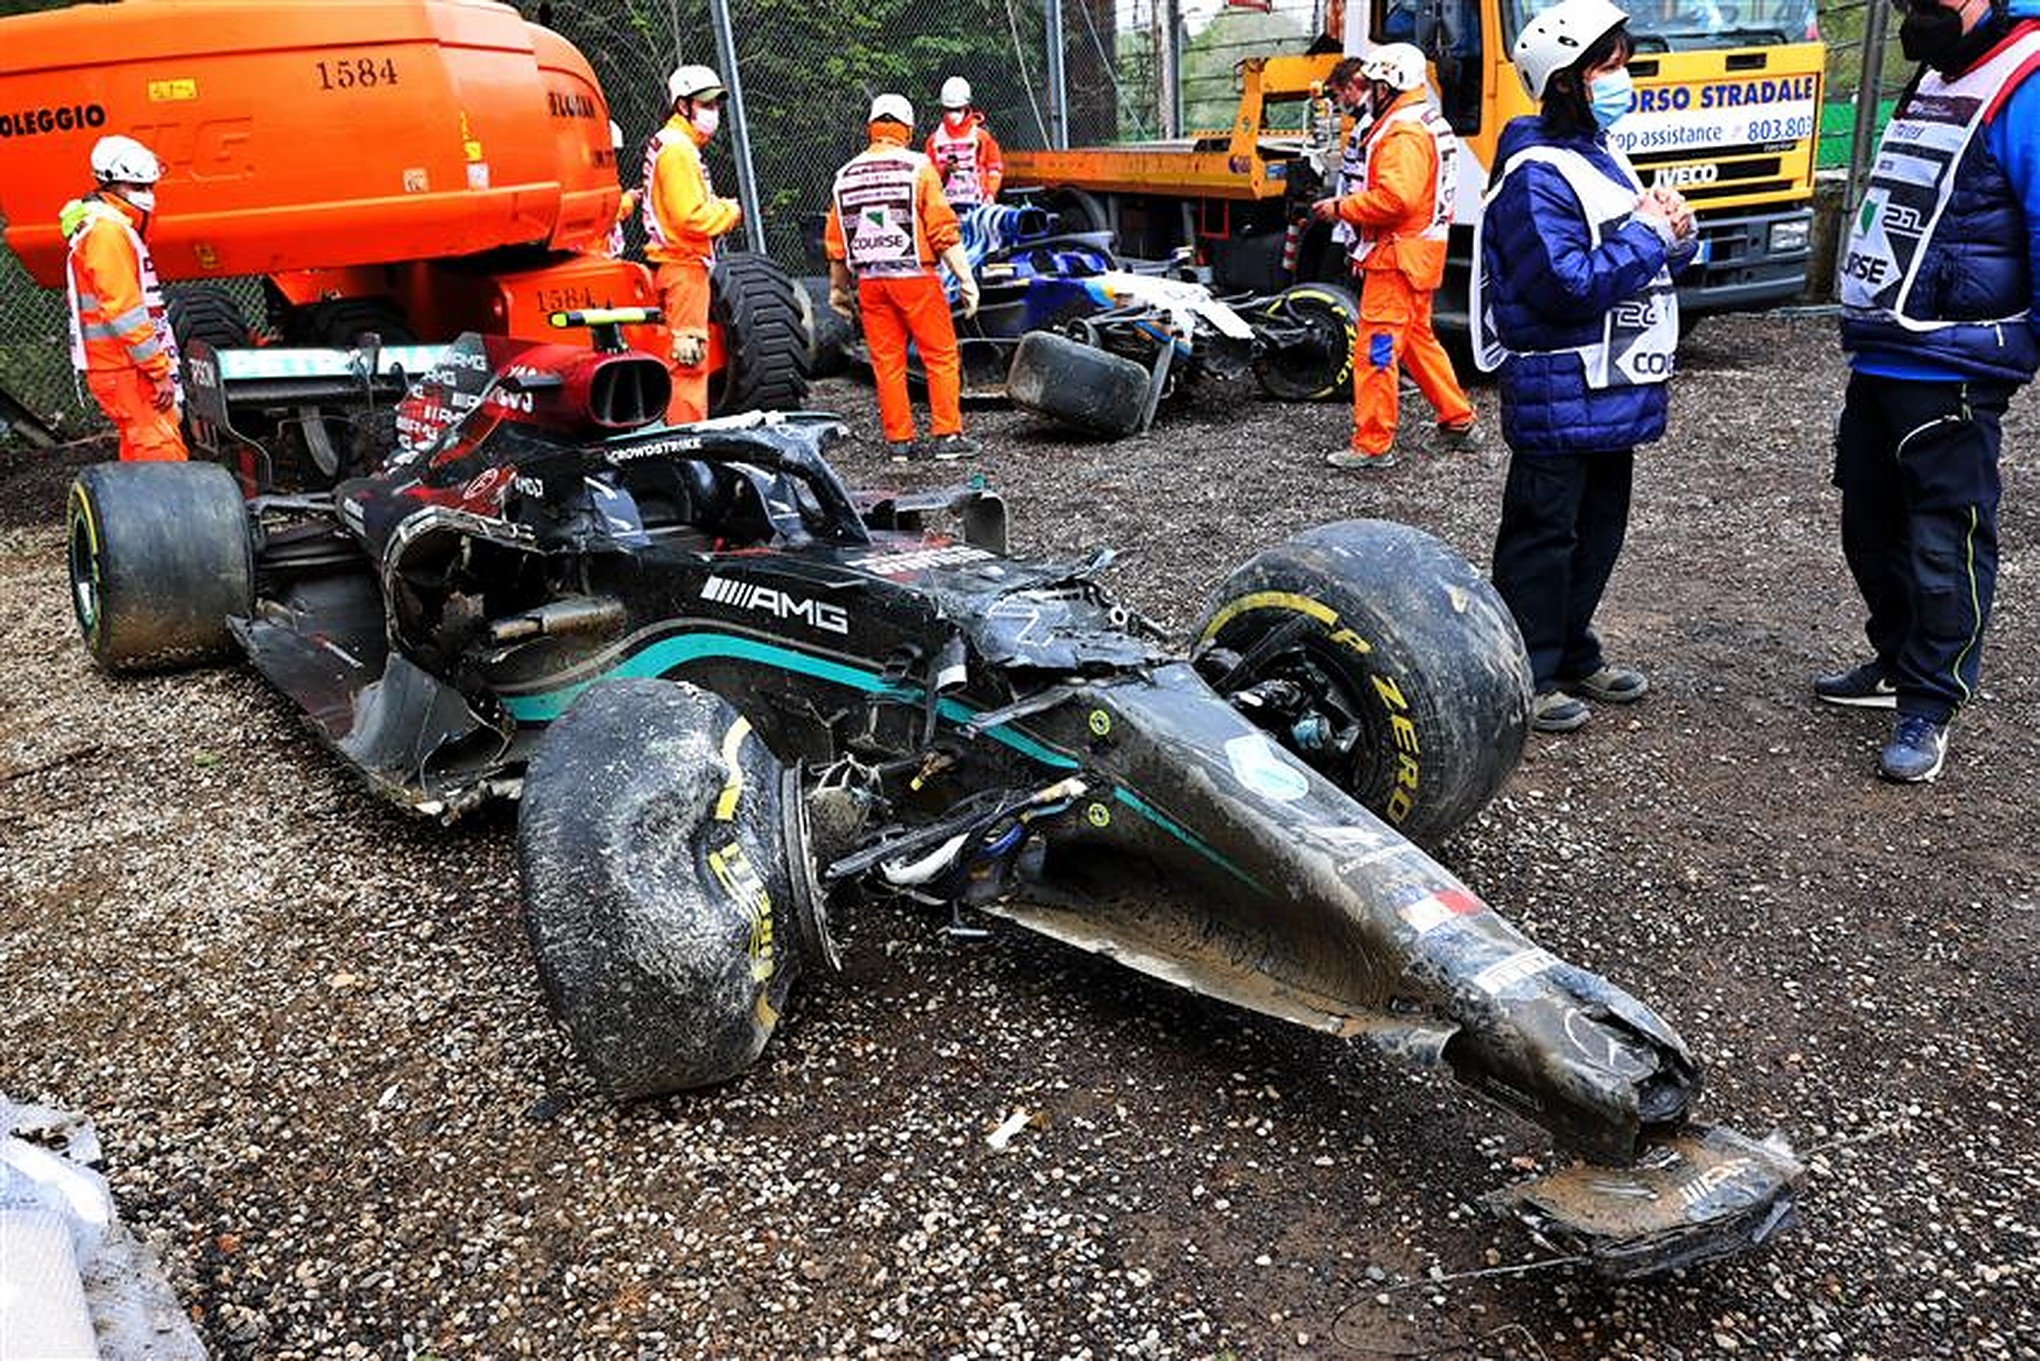 Valtteri Bottas' Mercedes at Imola after his crash with George Russell - Formula1news.co.uk